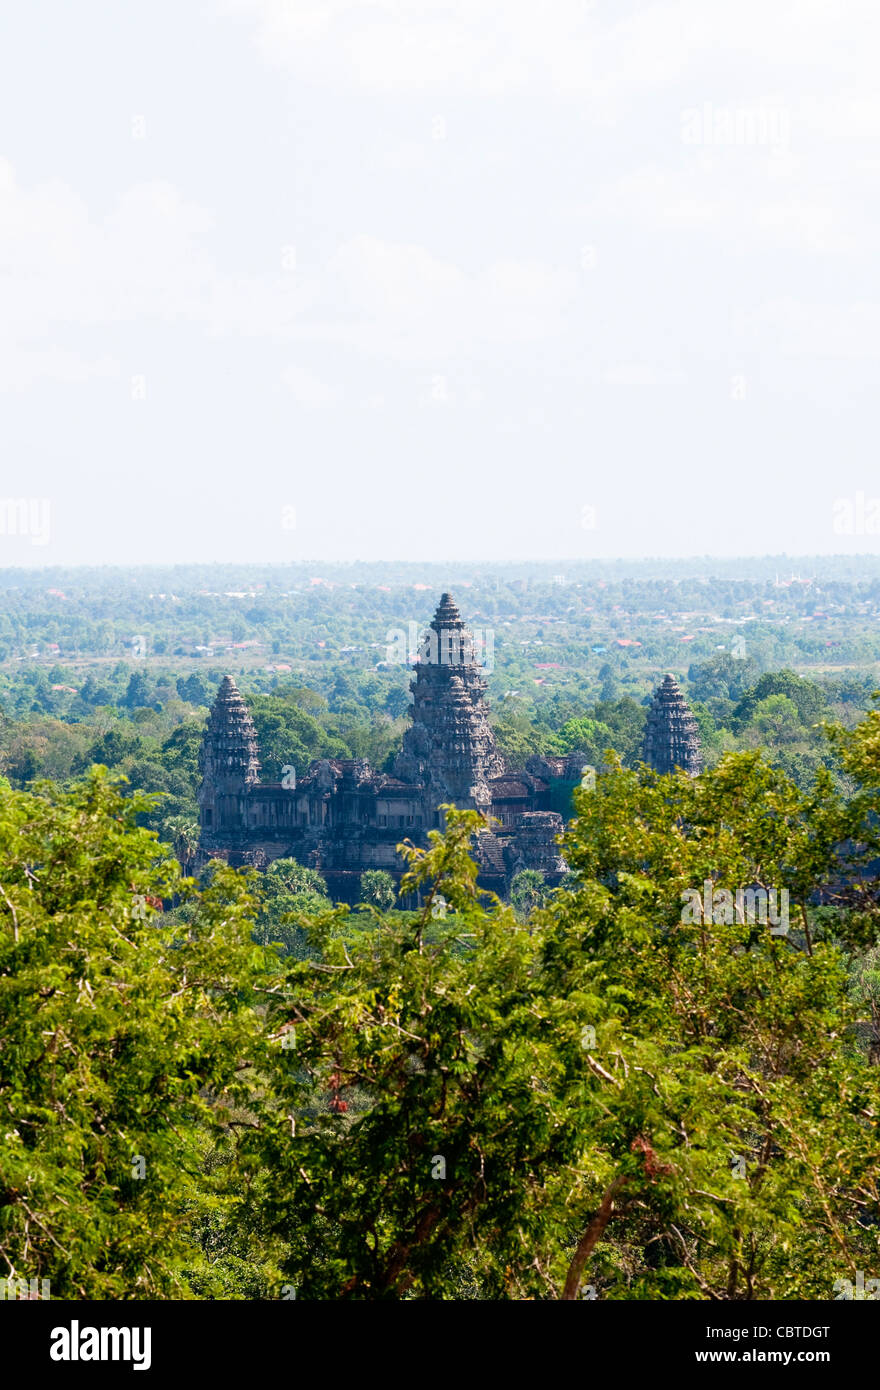 angkor-wat-surrounded-by-jungle-cambodia-CBTDGT.jpg